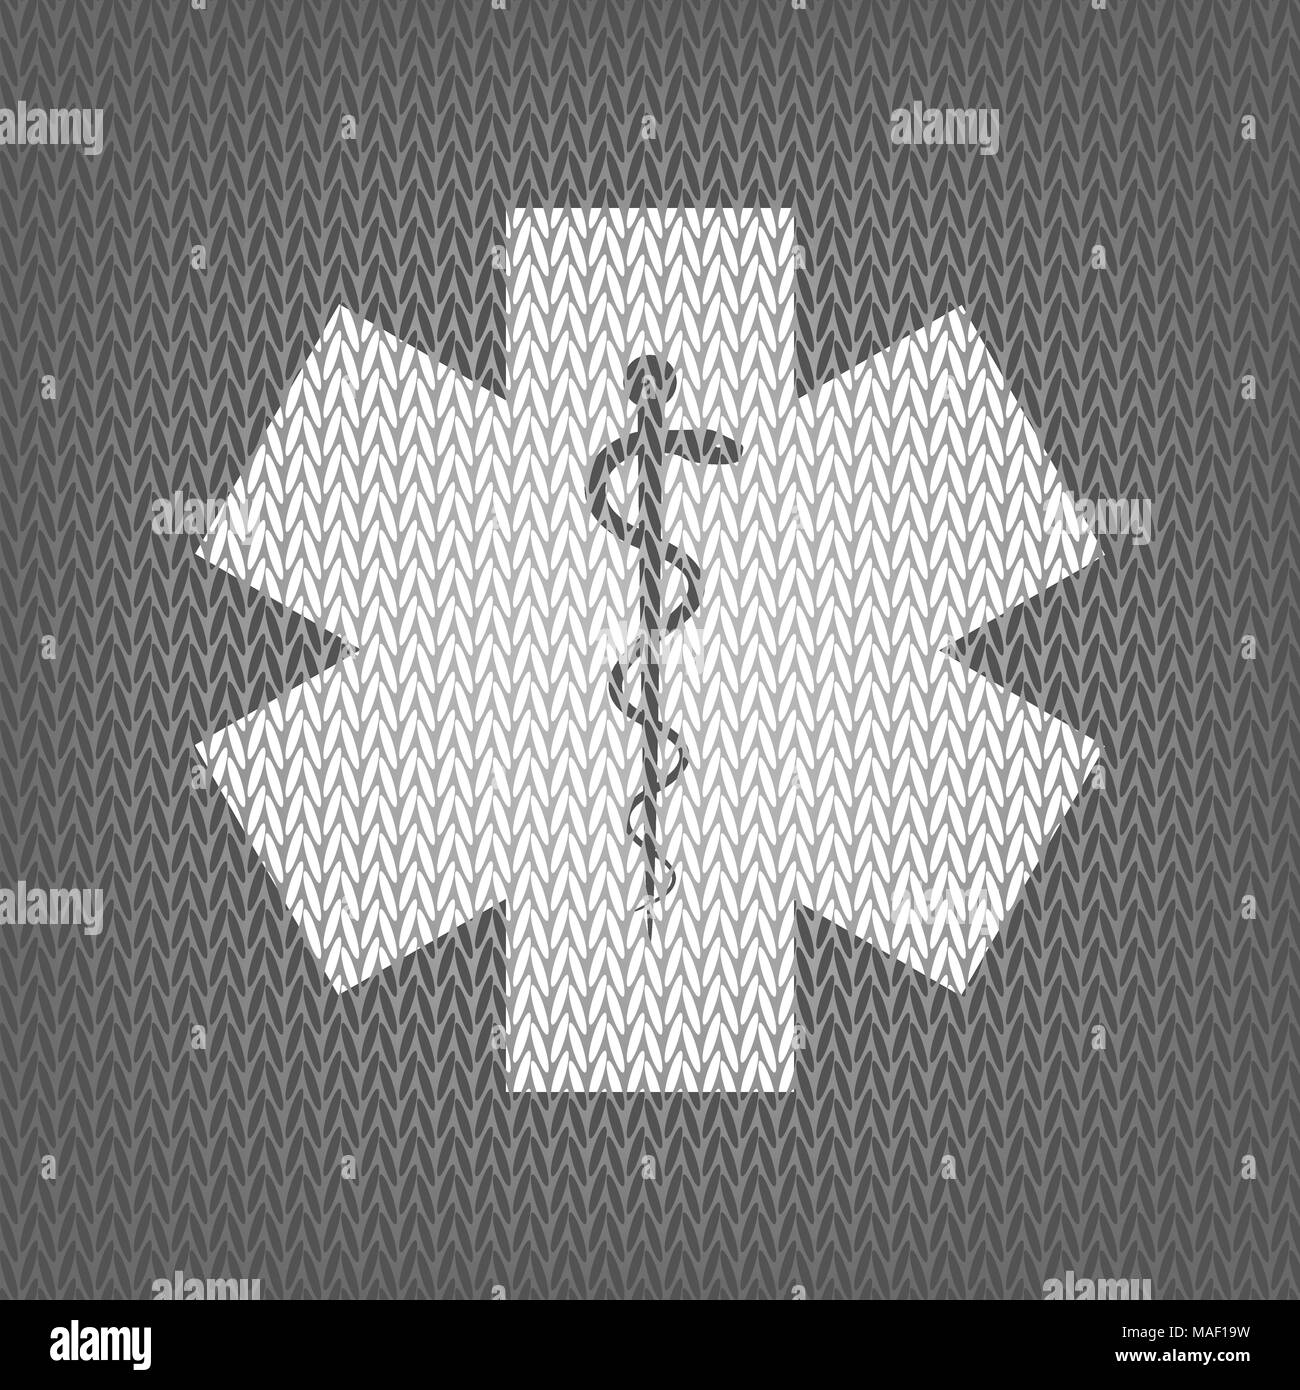 Medical Symbol Of The Emergency Or Star Of Life Vector White